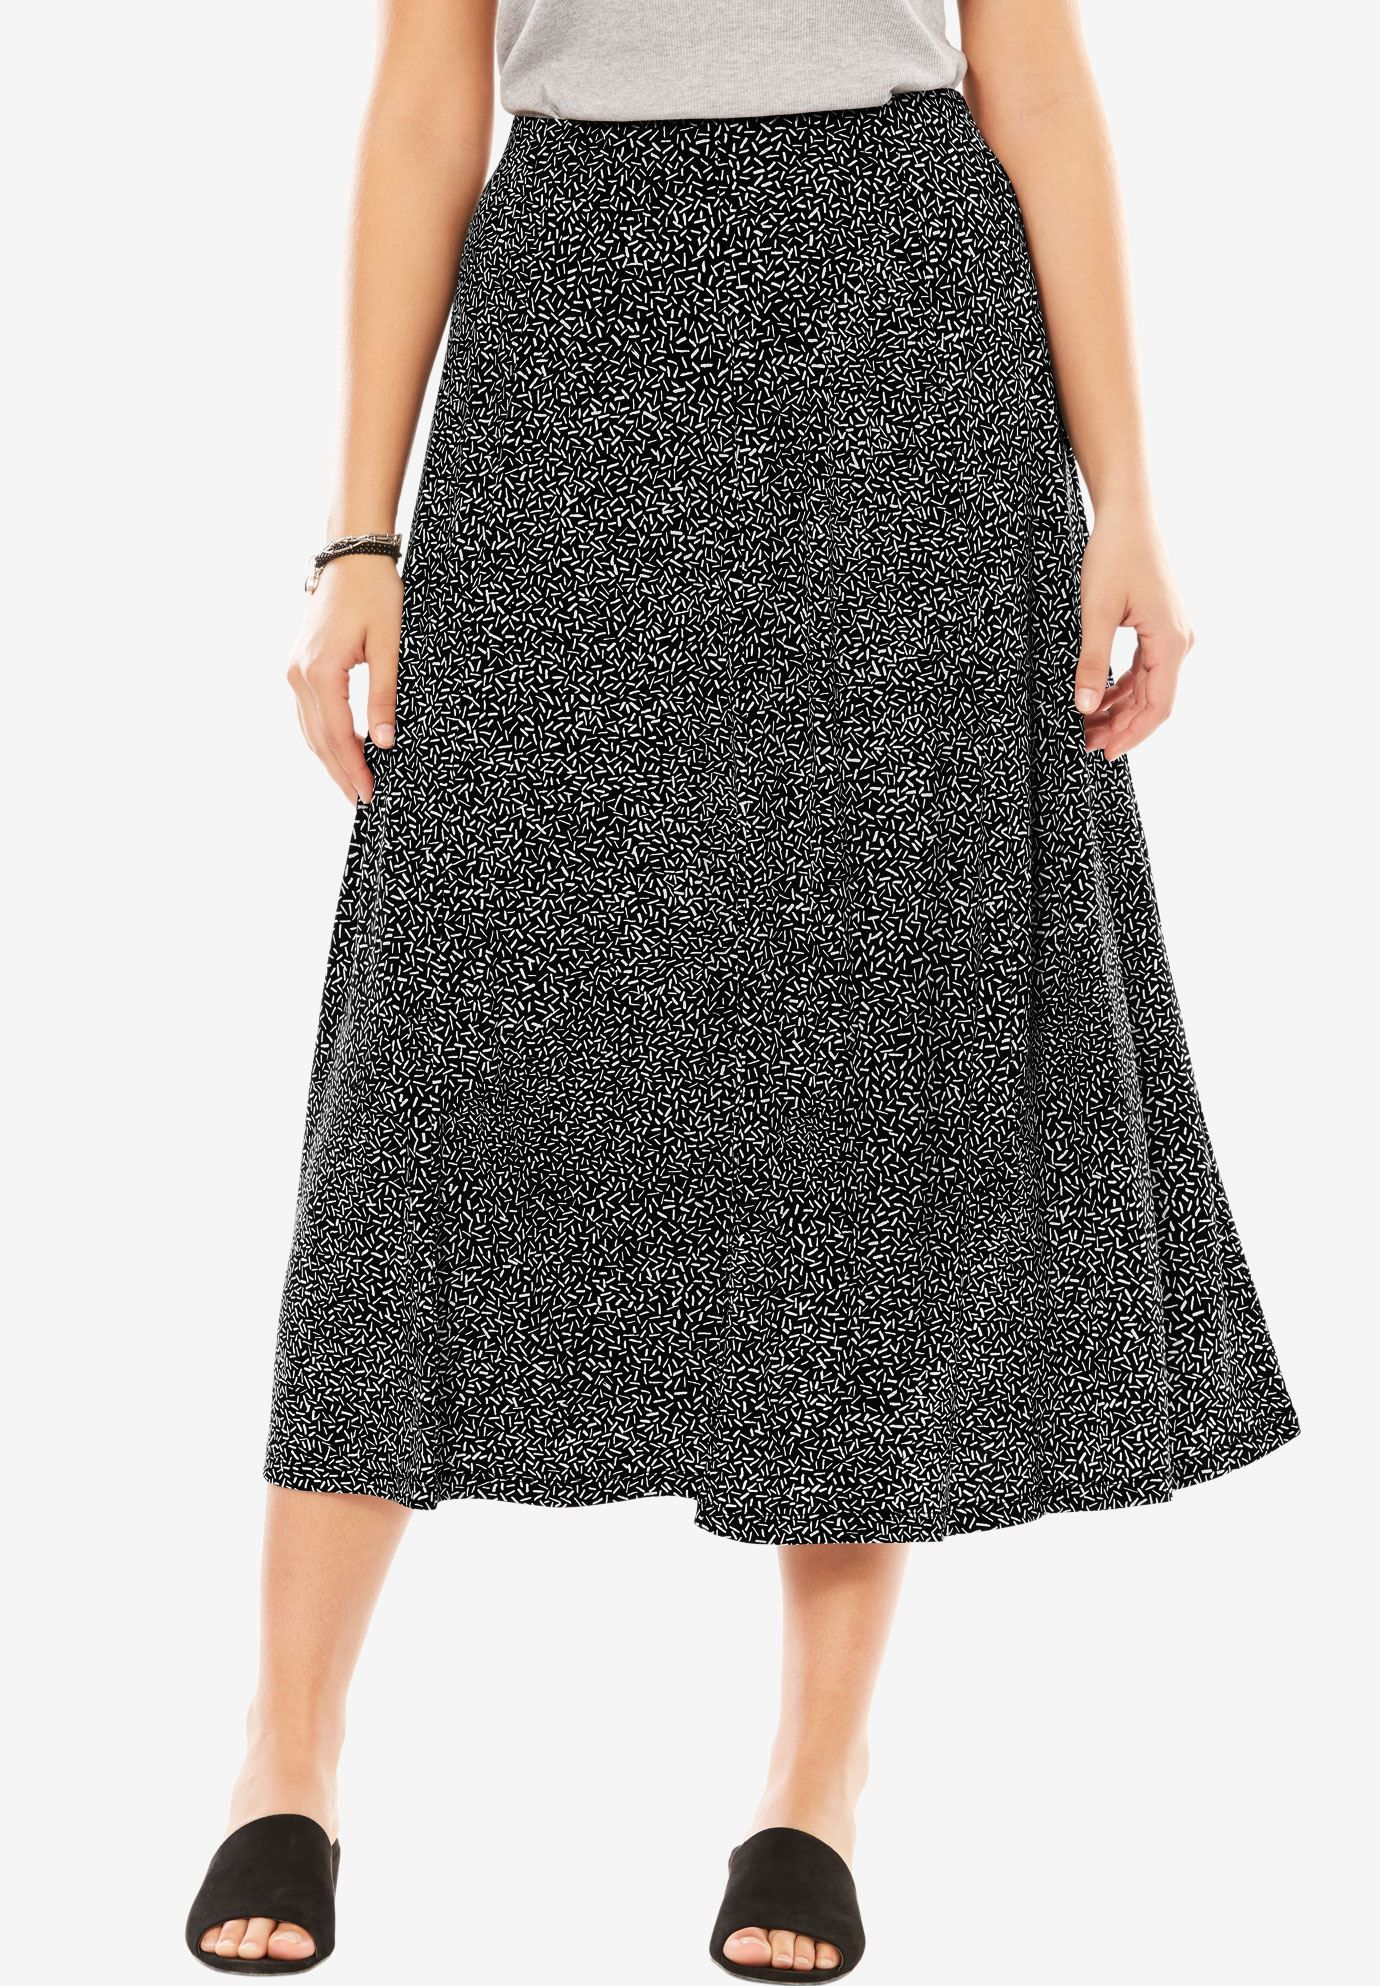 67dddd17cb A-line skirt   Plus Size Skirts   Woman Within Now: $29.99 Save 25 ...